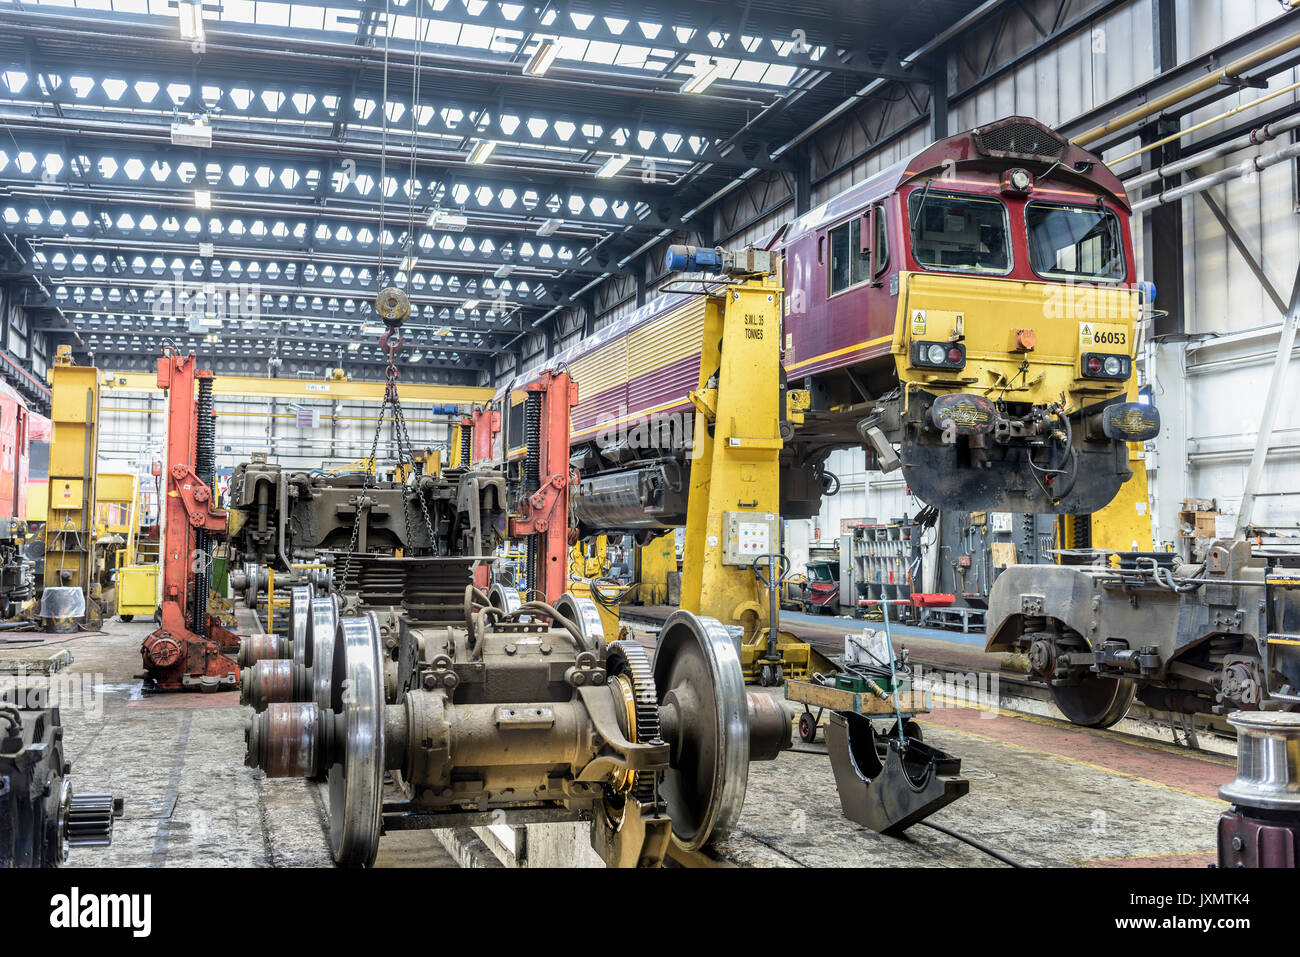 Locomotives in train works - Stock Image